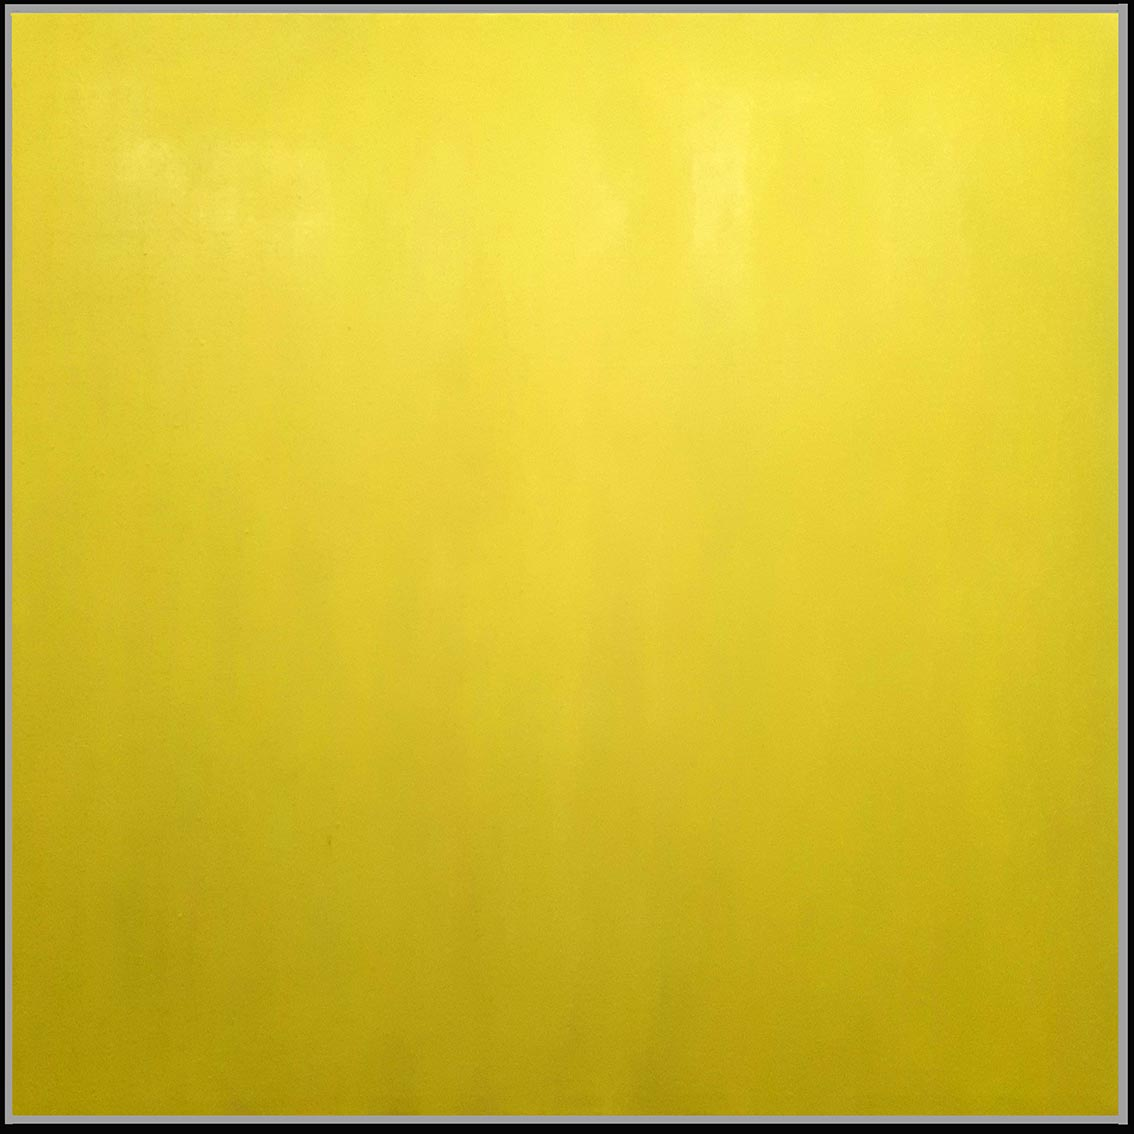 Jaune-Delave-Patrick-Joosten-2021-January-29th-With-frame